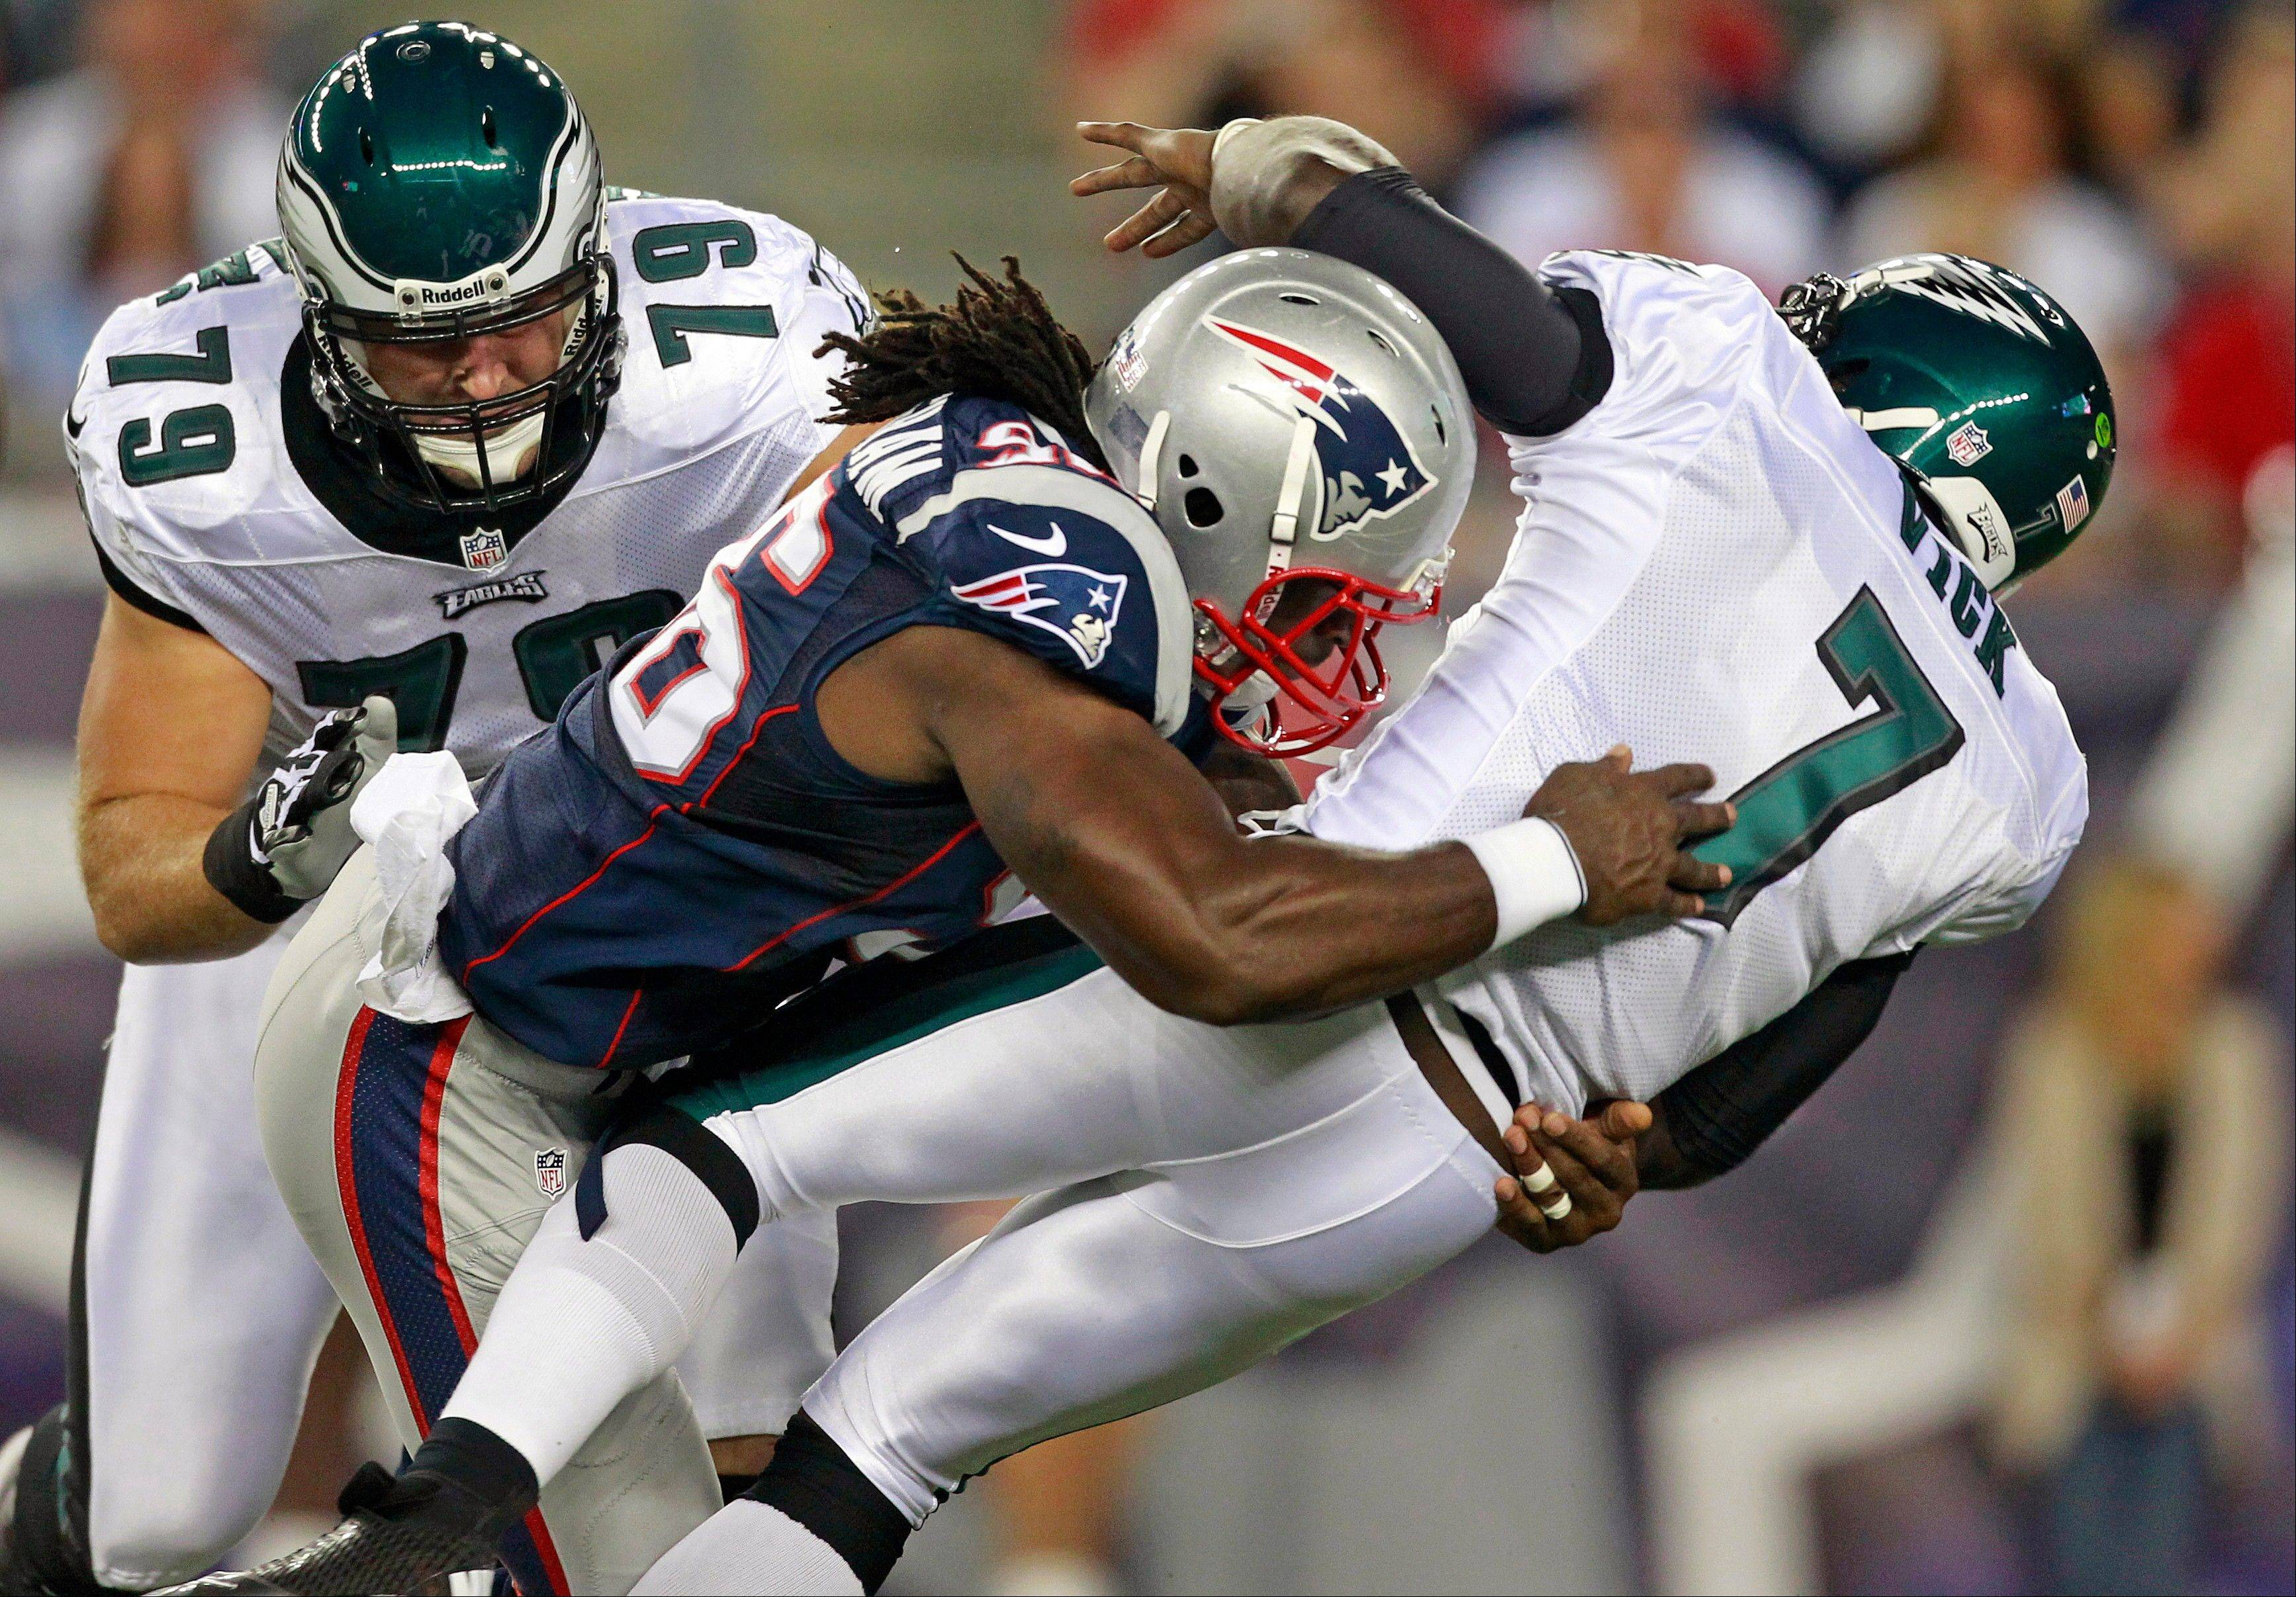 New England Patriots linebacker Jermaine Cunningham (96) drops Philadelphia Eagles quarterback Michael Vick (7) to the field on a hard hit during the first quarter of an NFL preseason football game Monday night in Foxborough, Mass. Vick left the game after the play. At left is Philadelphia Eagles tackle Todd Herremans.